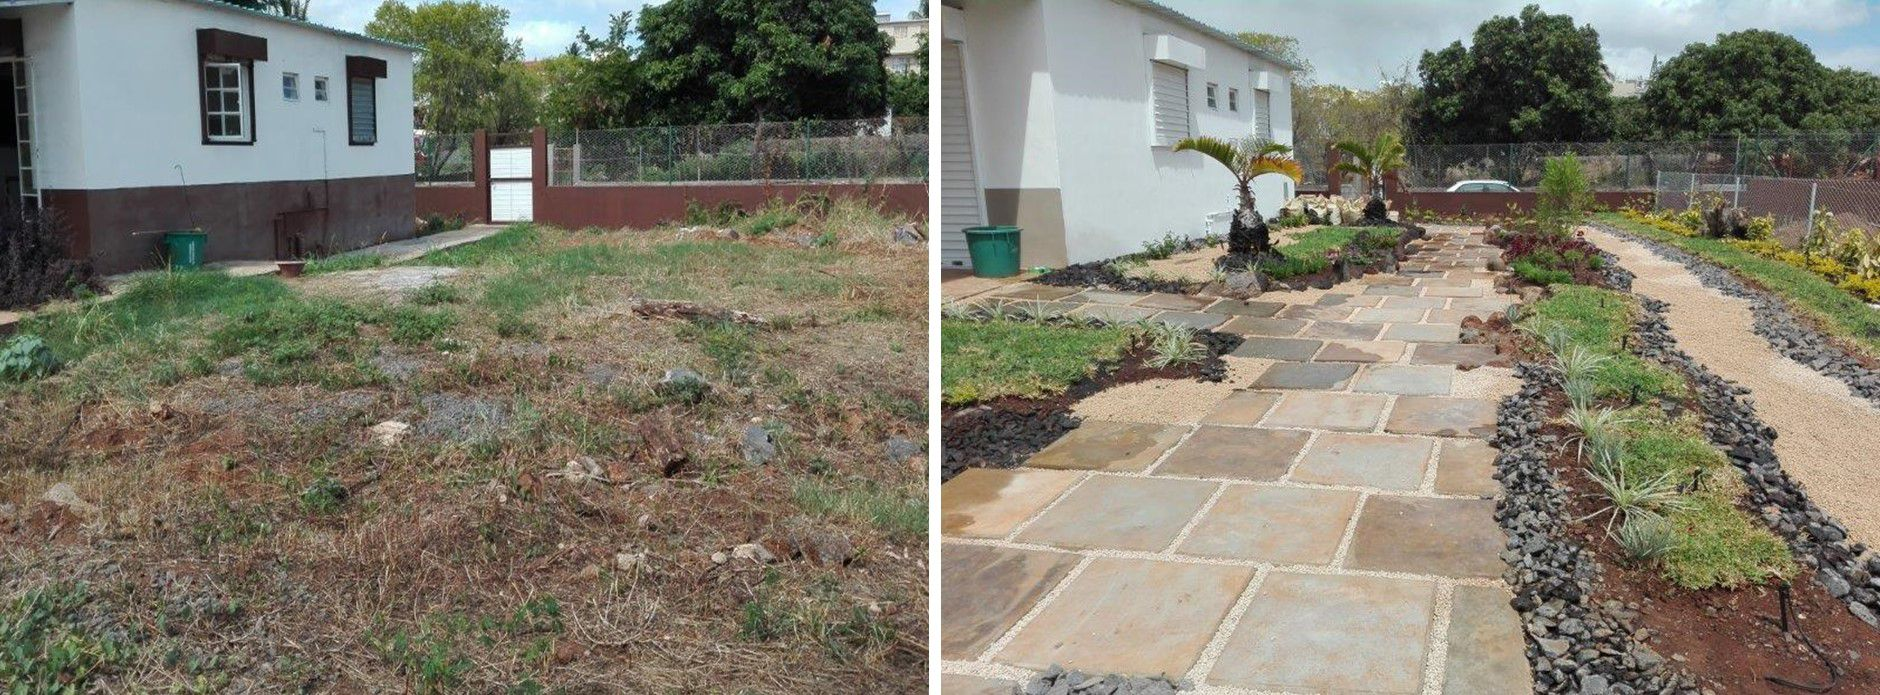 Before and After photos of the Japanese Garden